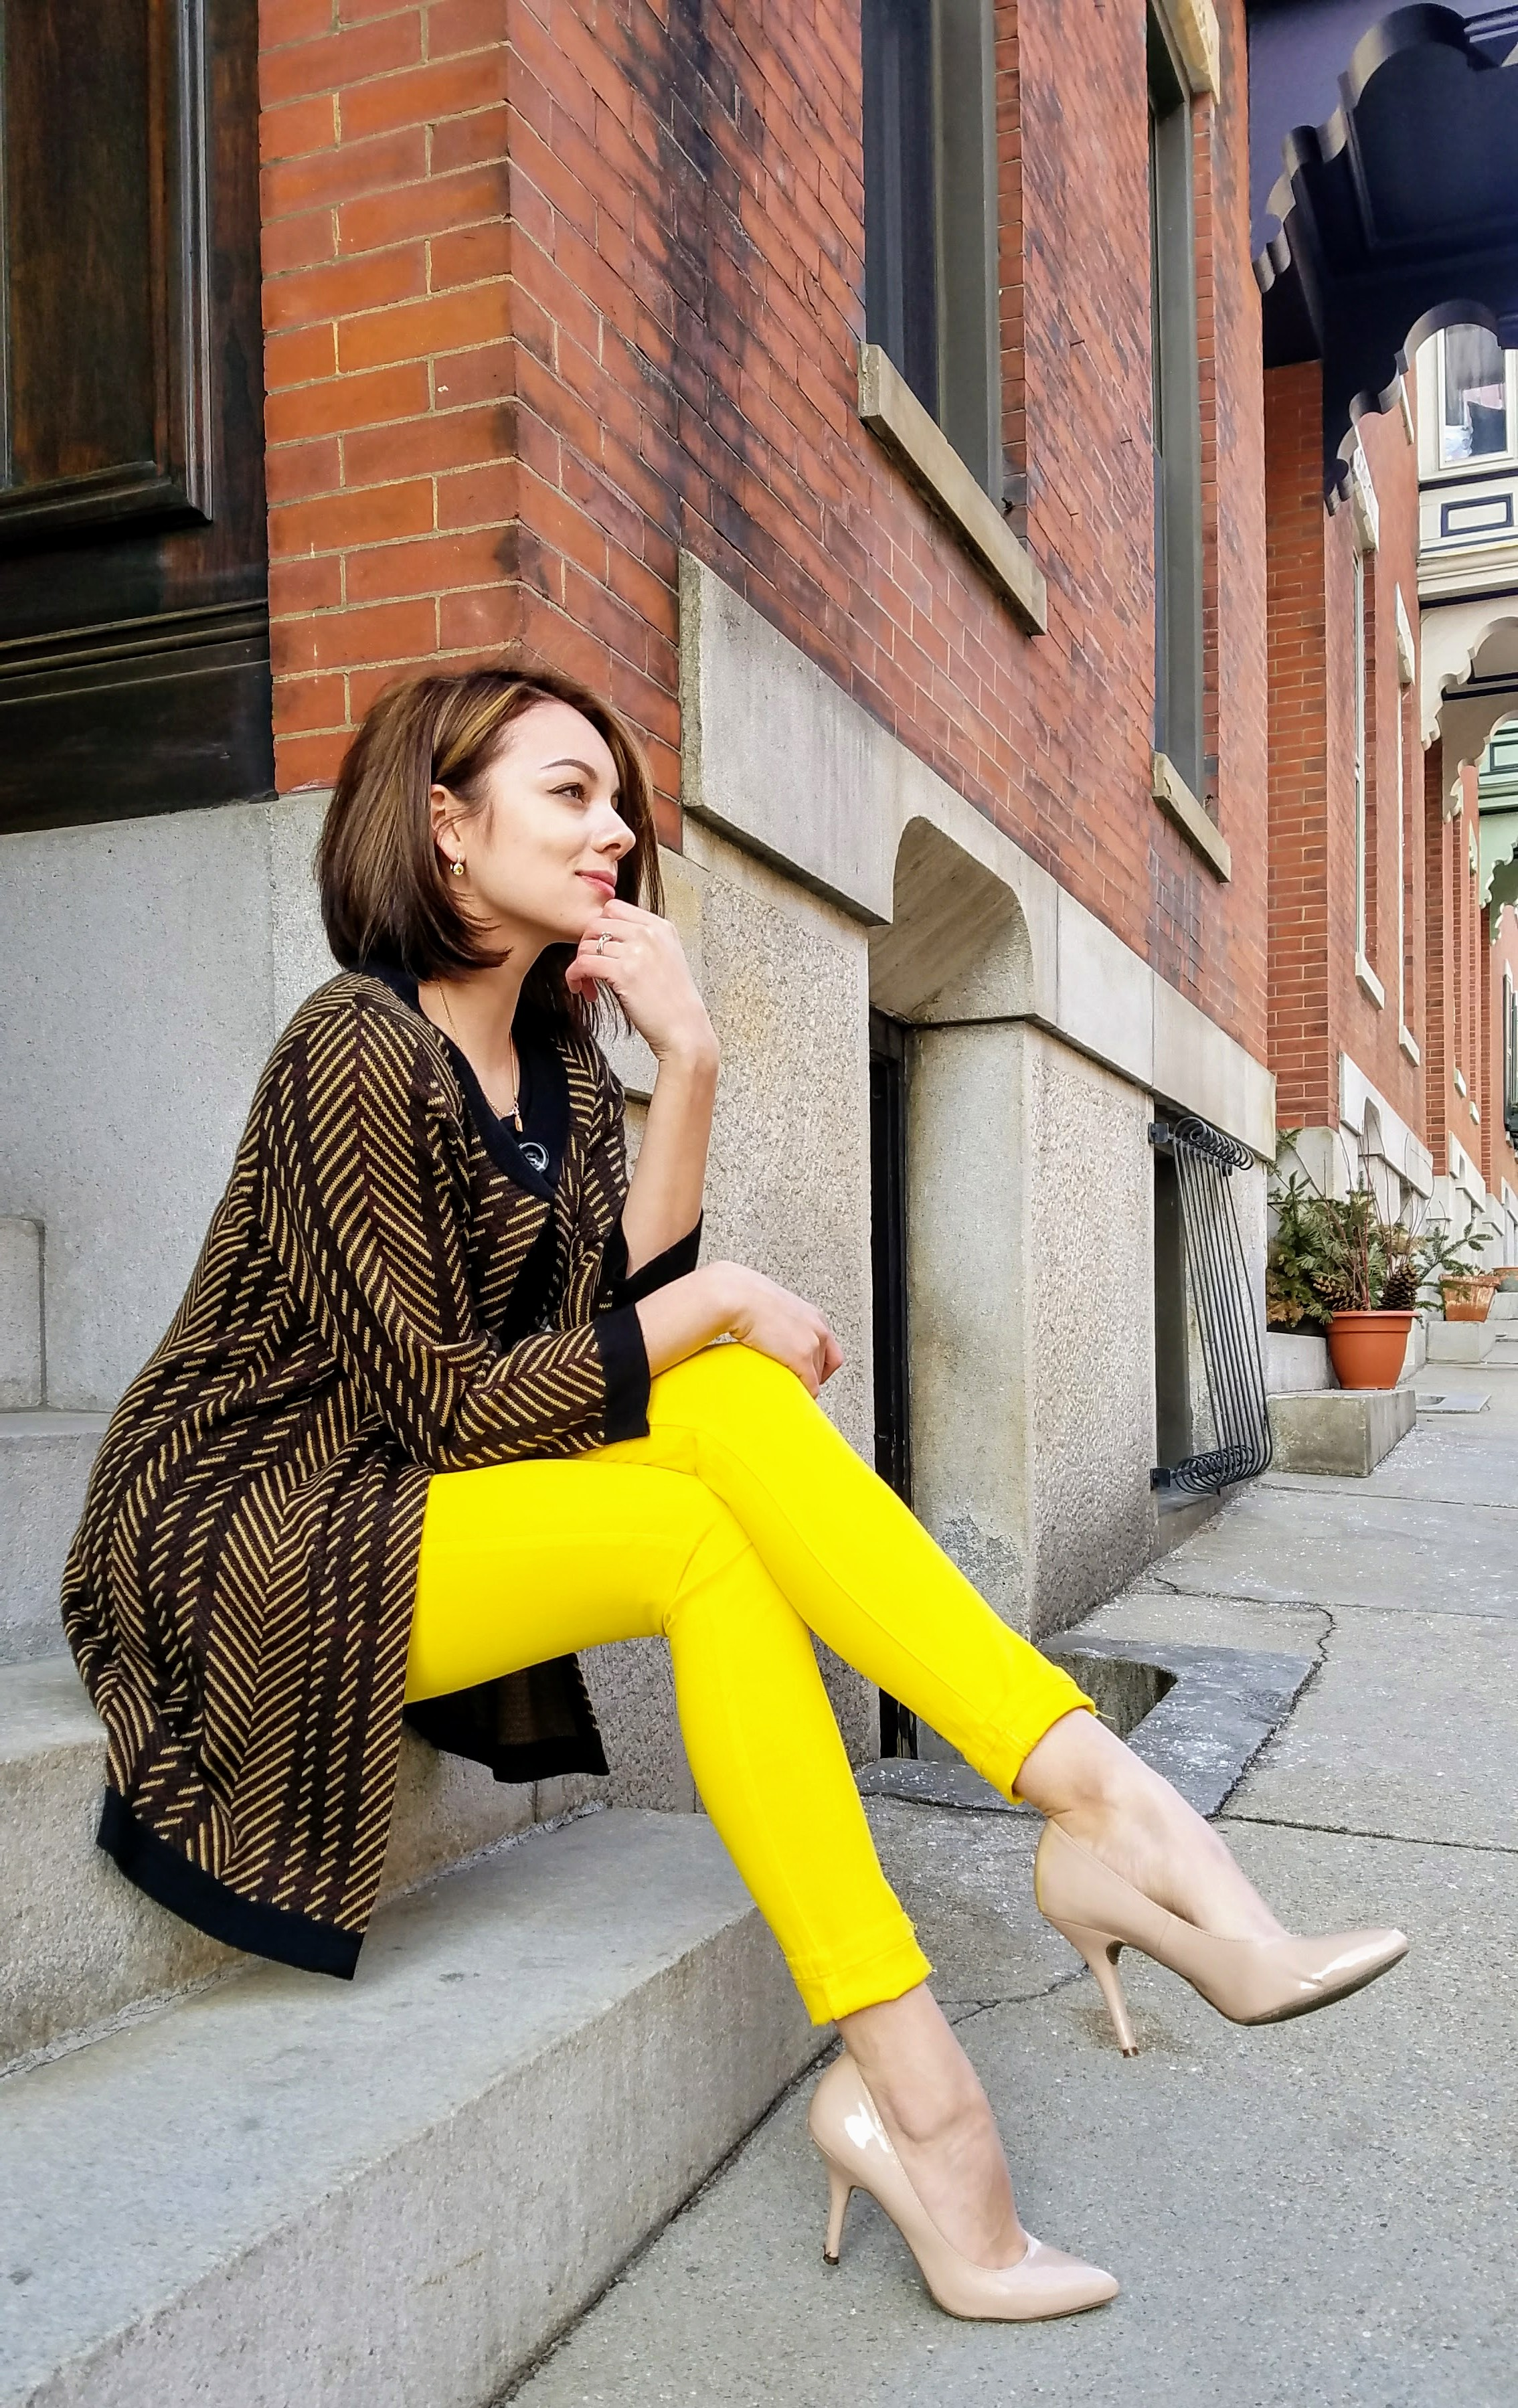 A girl wearing yellow jeans for her blog